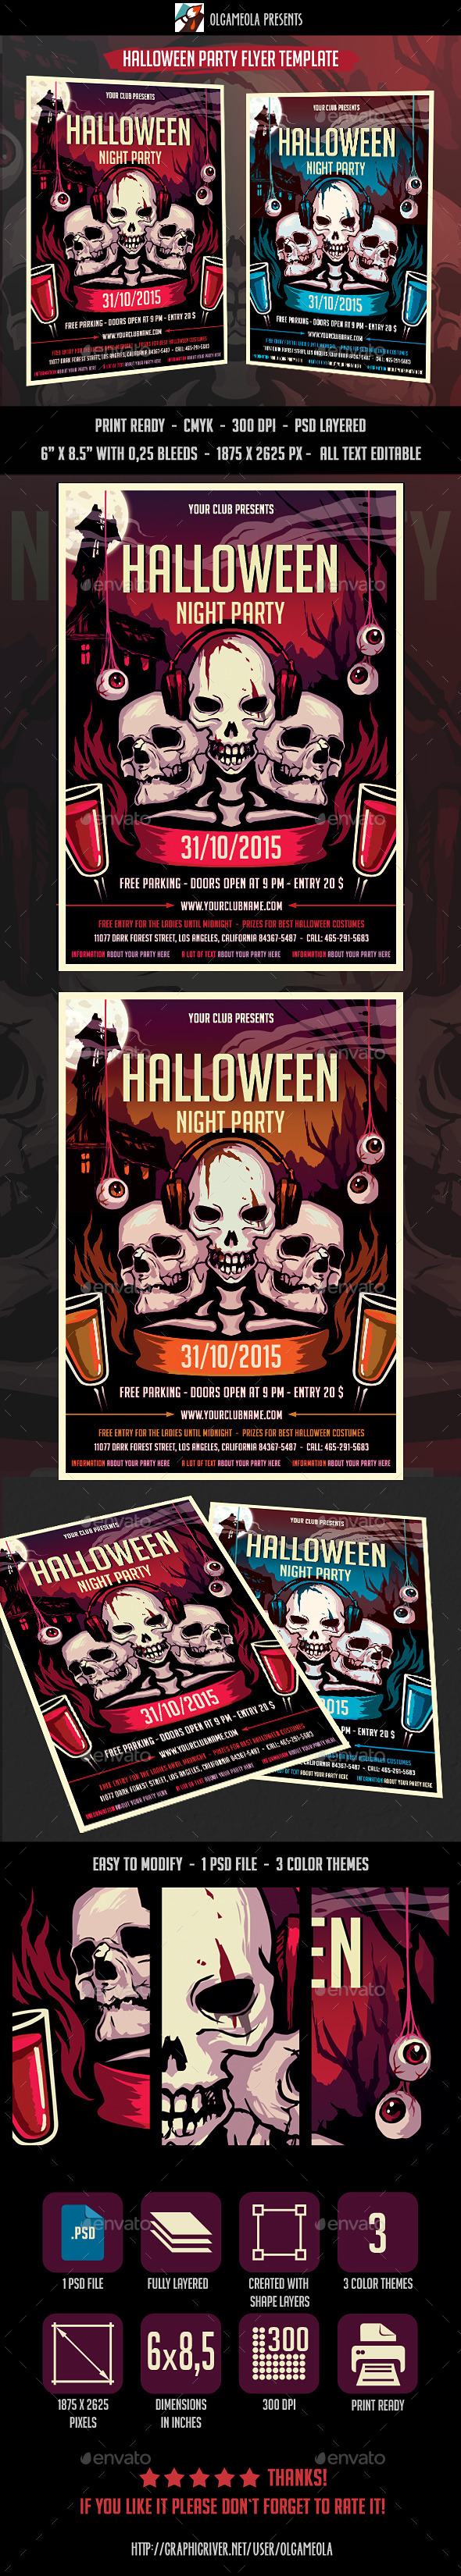 Halloween Night Party Flyer Template - Clubs & Parties Events